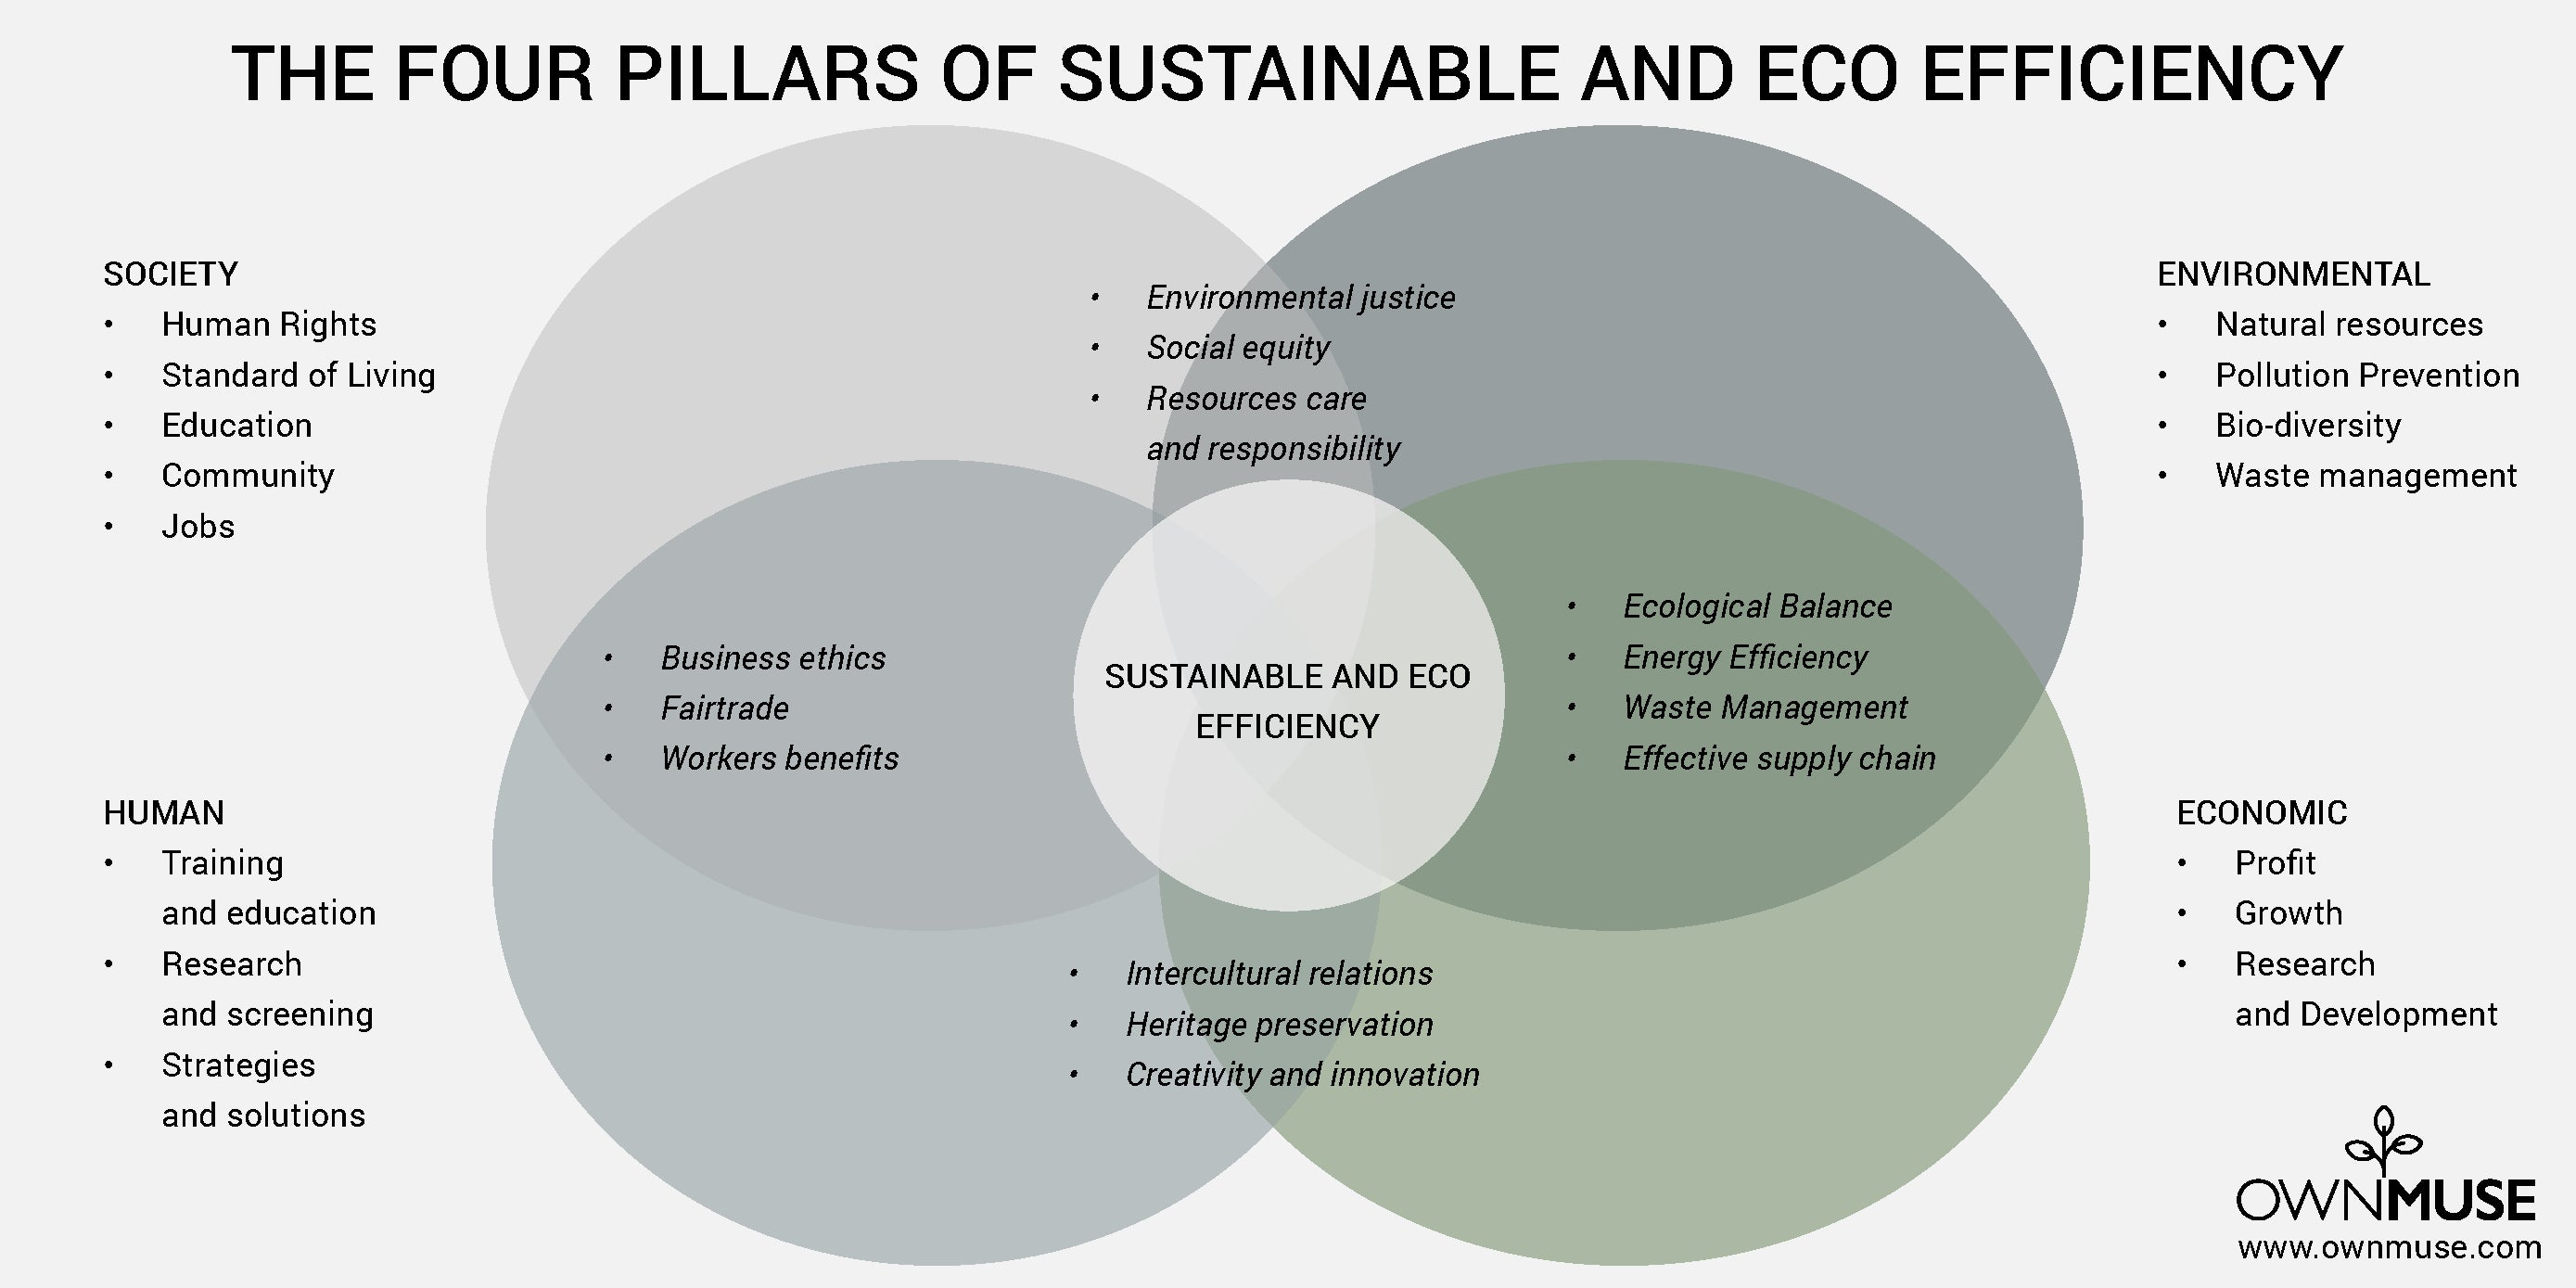 The Four Pillars of Sustainable and Eco Efficiency